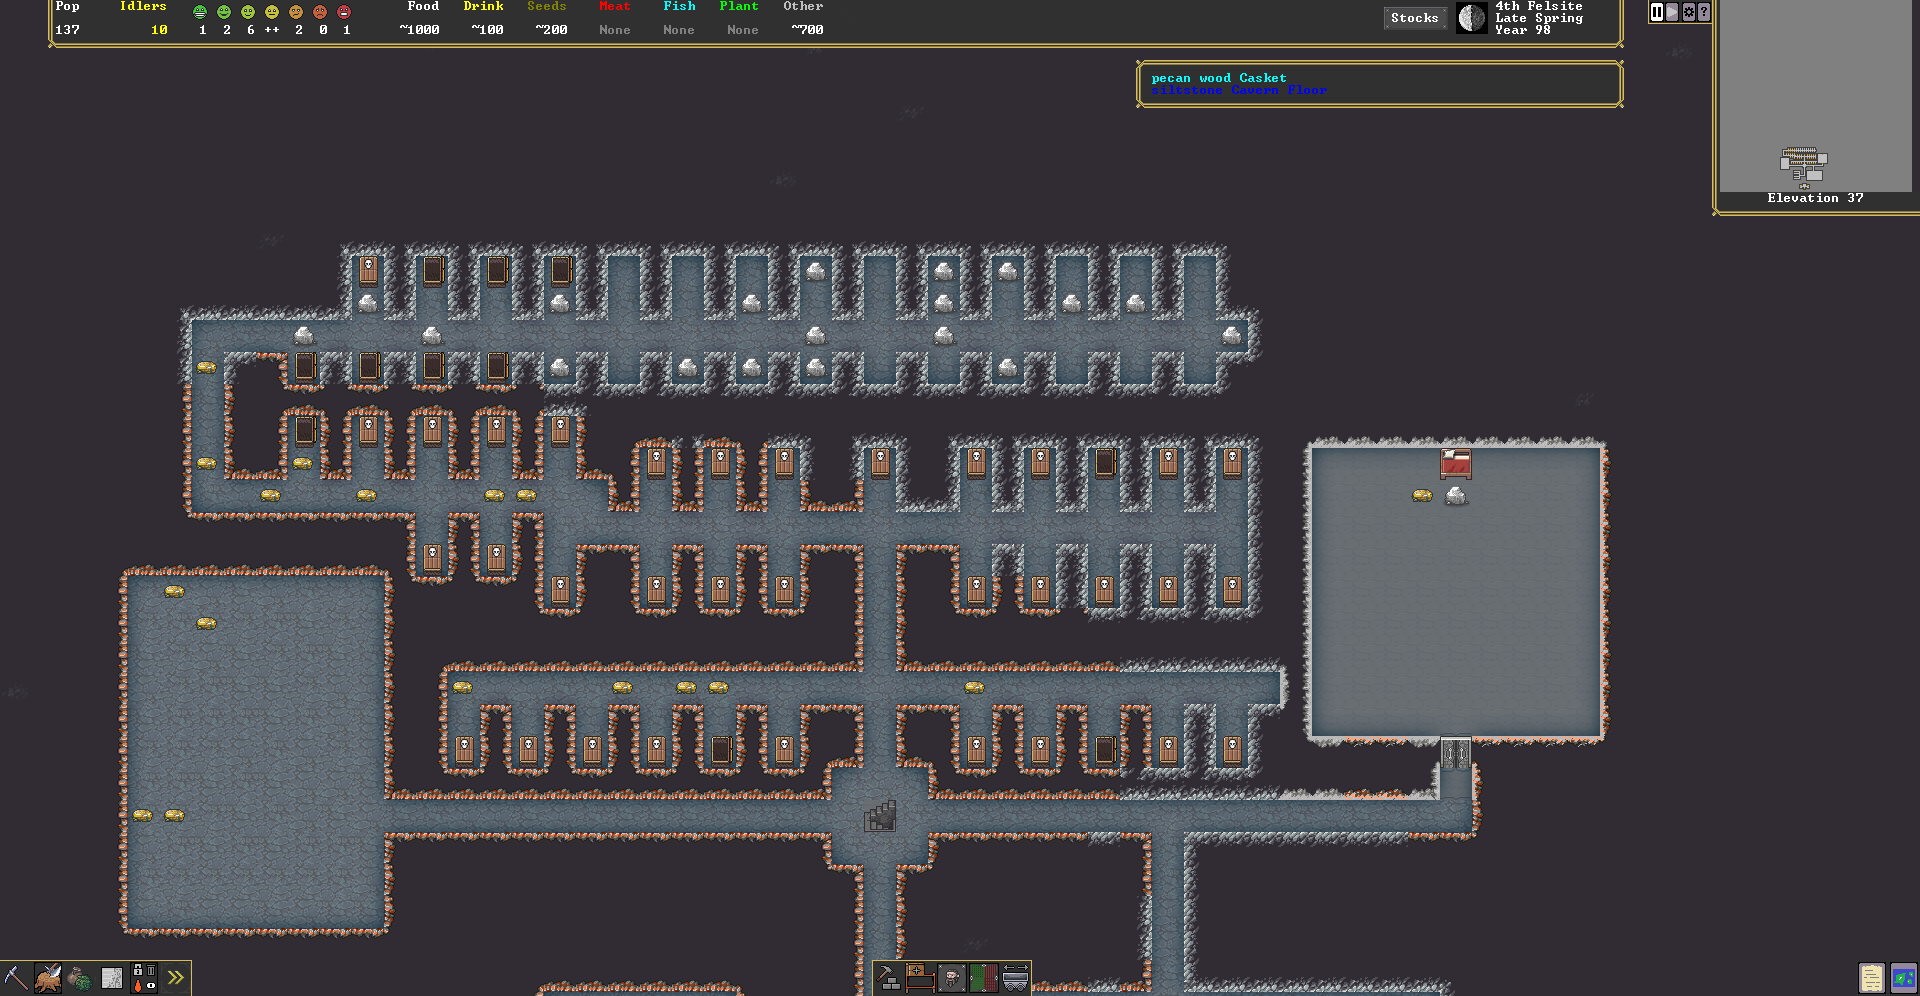 in-progress image of the upcoming graphical version of Dwarf Fortress.